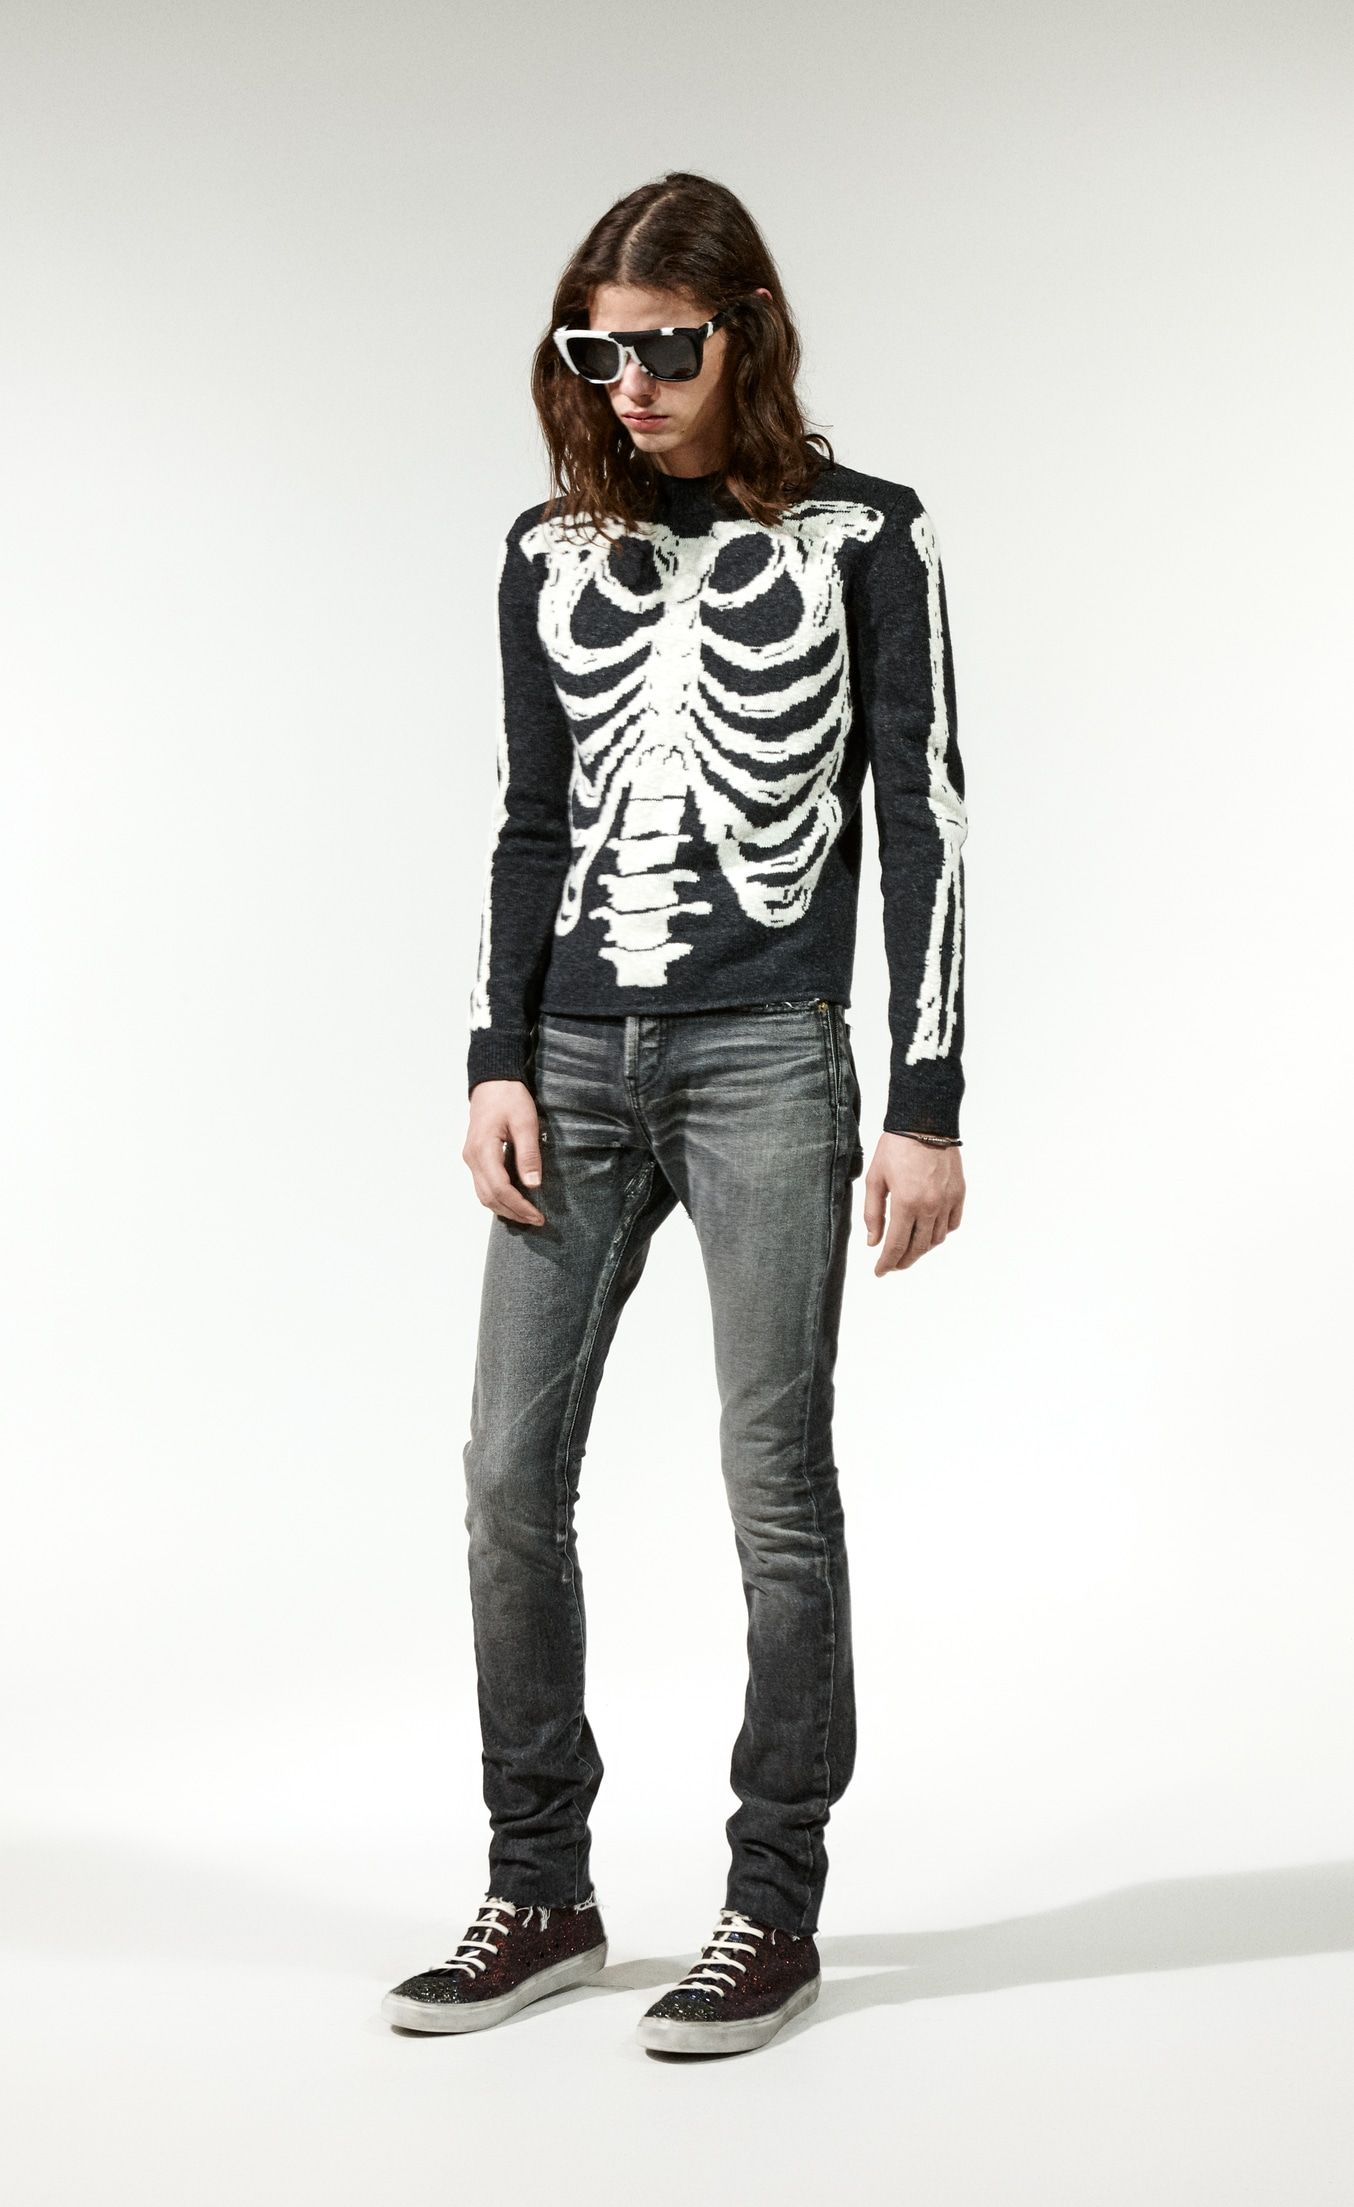 724d271f2aa Saint Laurent Skeleton Sweater In a Black And Gray Jacquard Knit | YSL.com